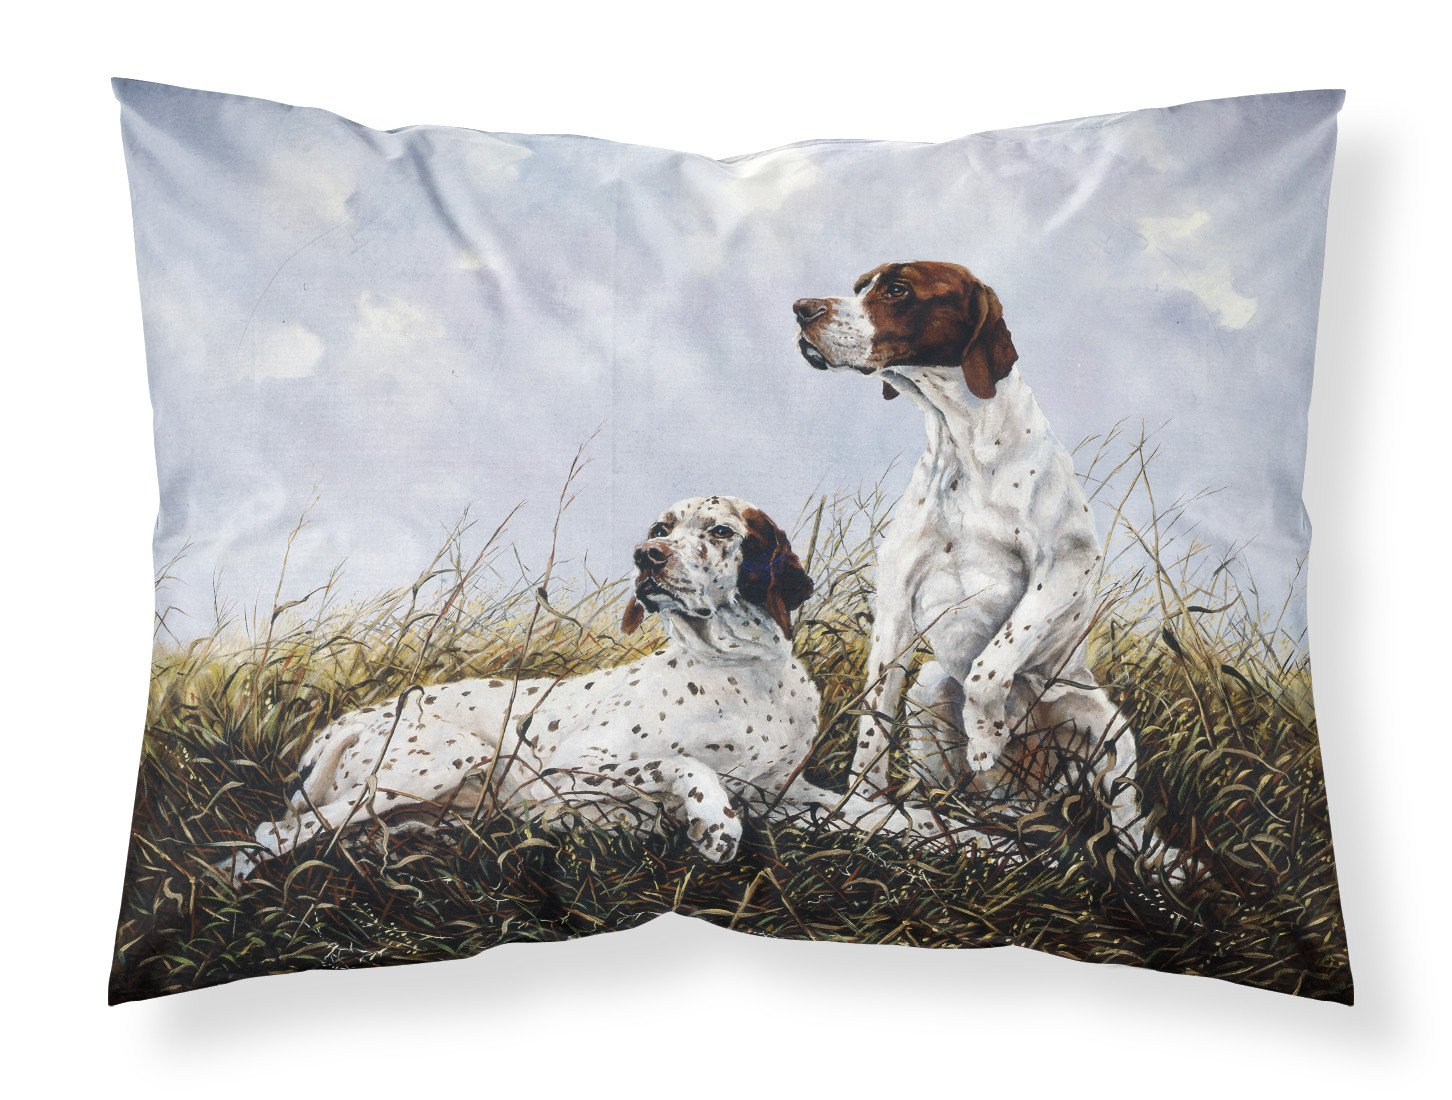 English Pointer by Michael Herring Fabric Standard Pillowcase HMHE0011PILLOWCASE by Caroline's Treasures